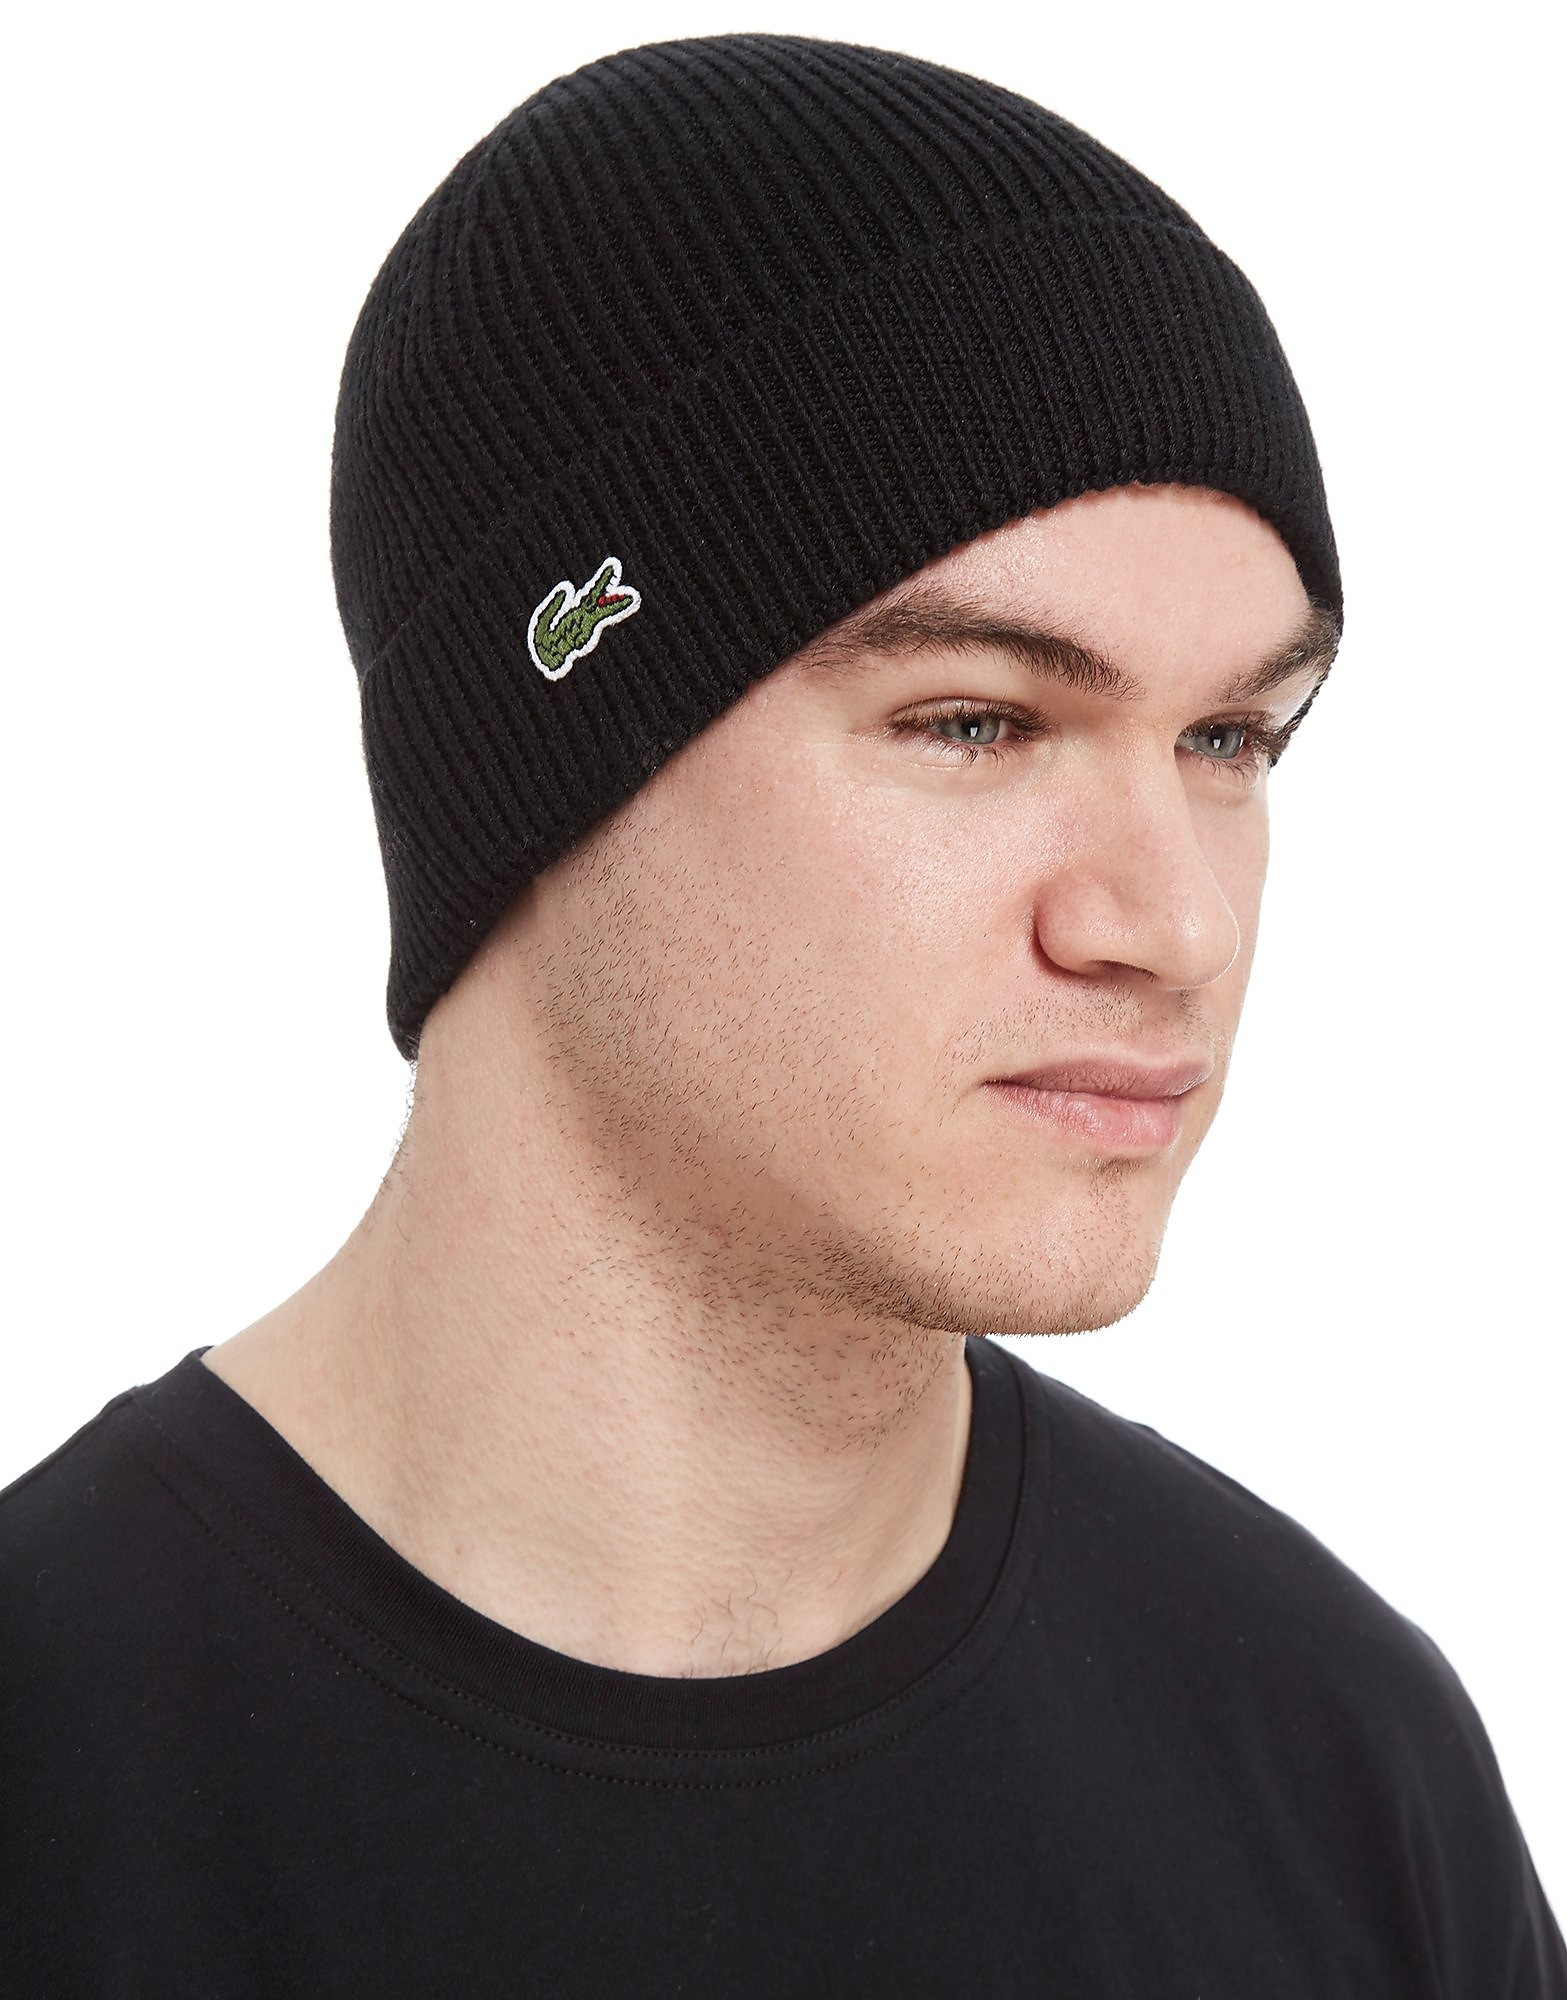 Lacoste Cuffed Beanie Hat